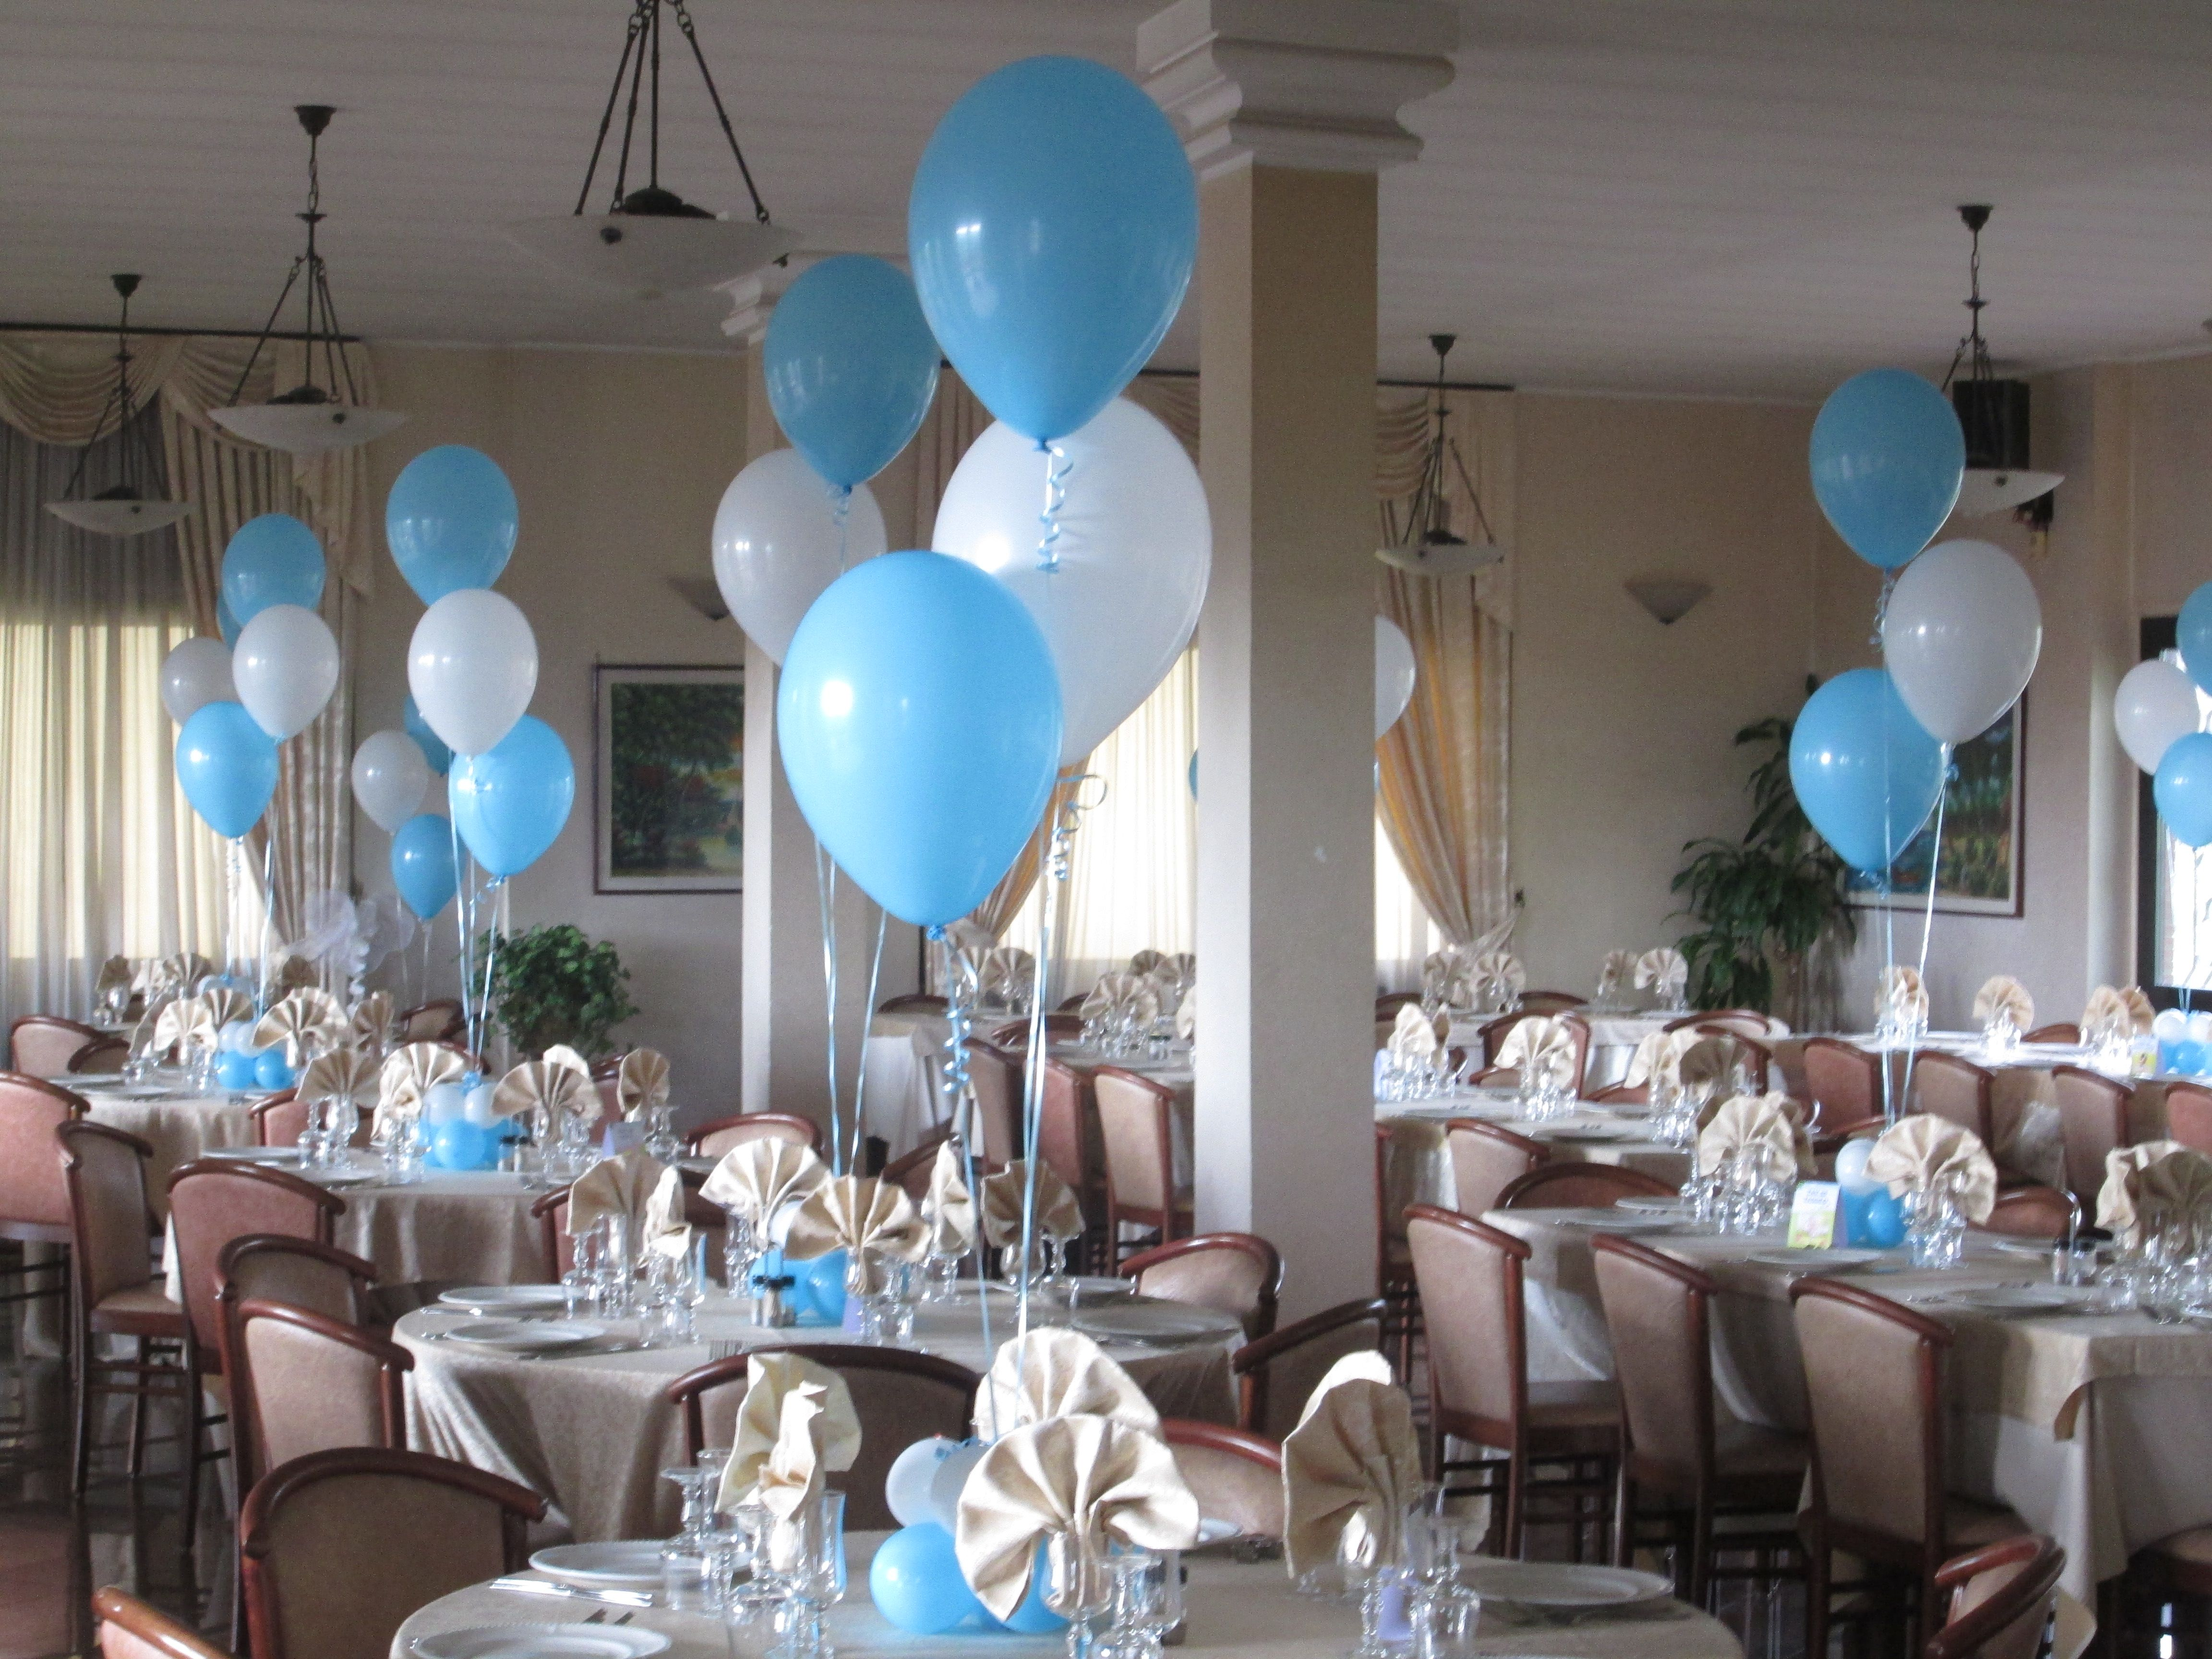 Allestimento ristorante my ideas pinterest for Idee palloncini per battesimo